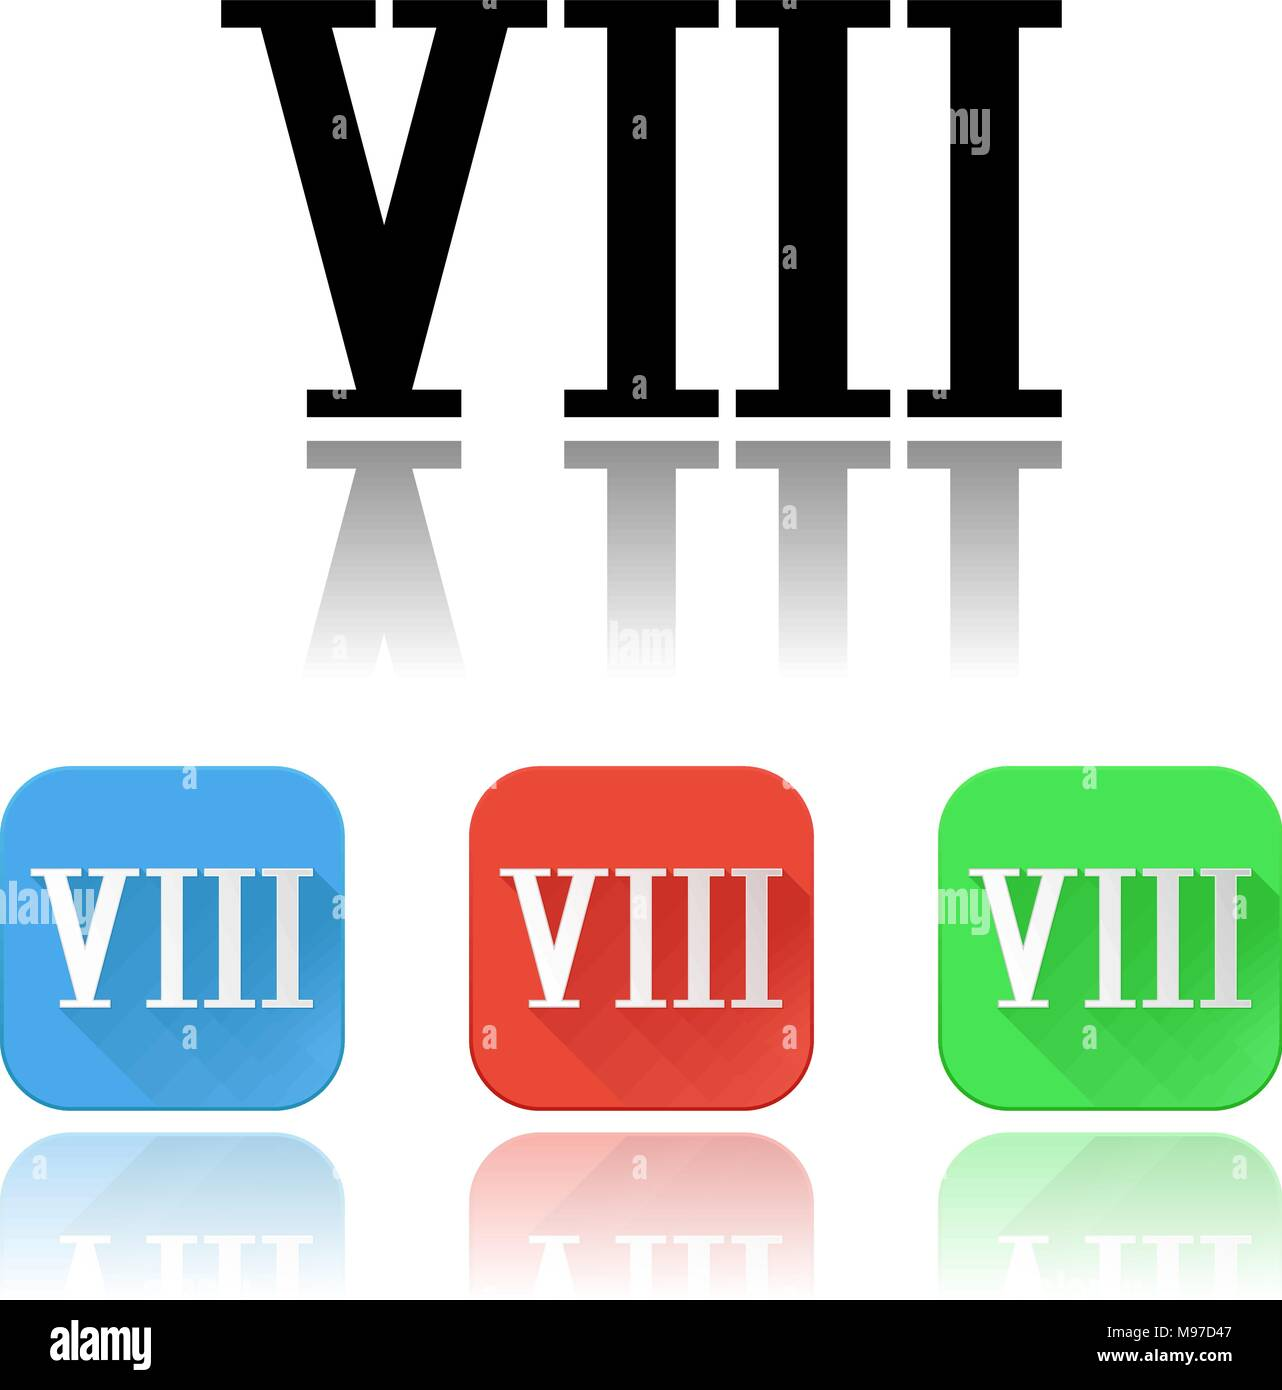 VIII roman numeral icons. Colored set with reflection - Stock Image